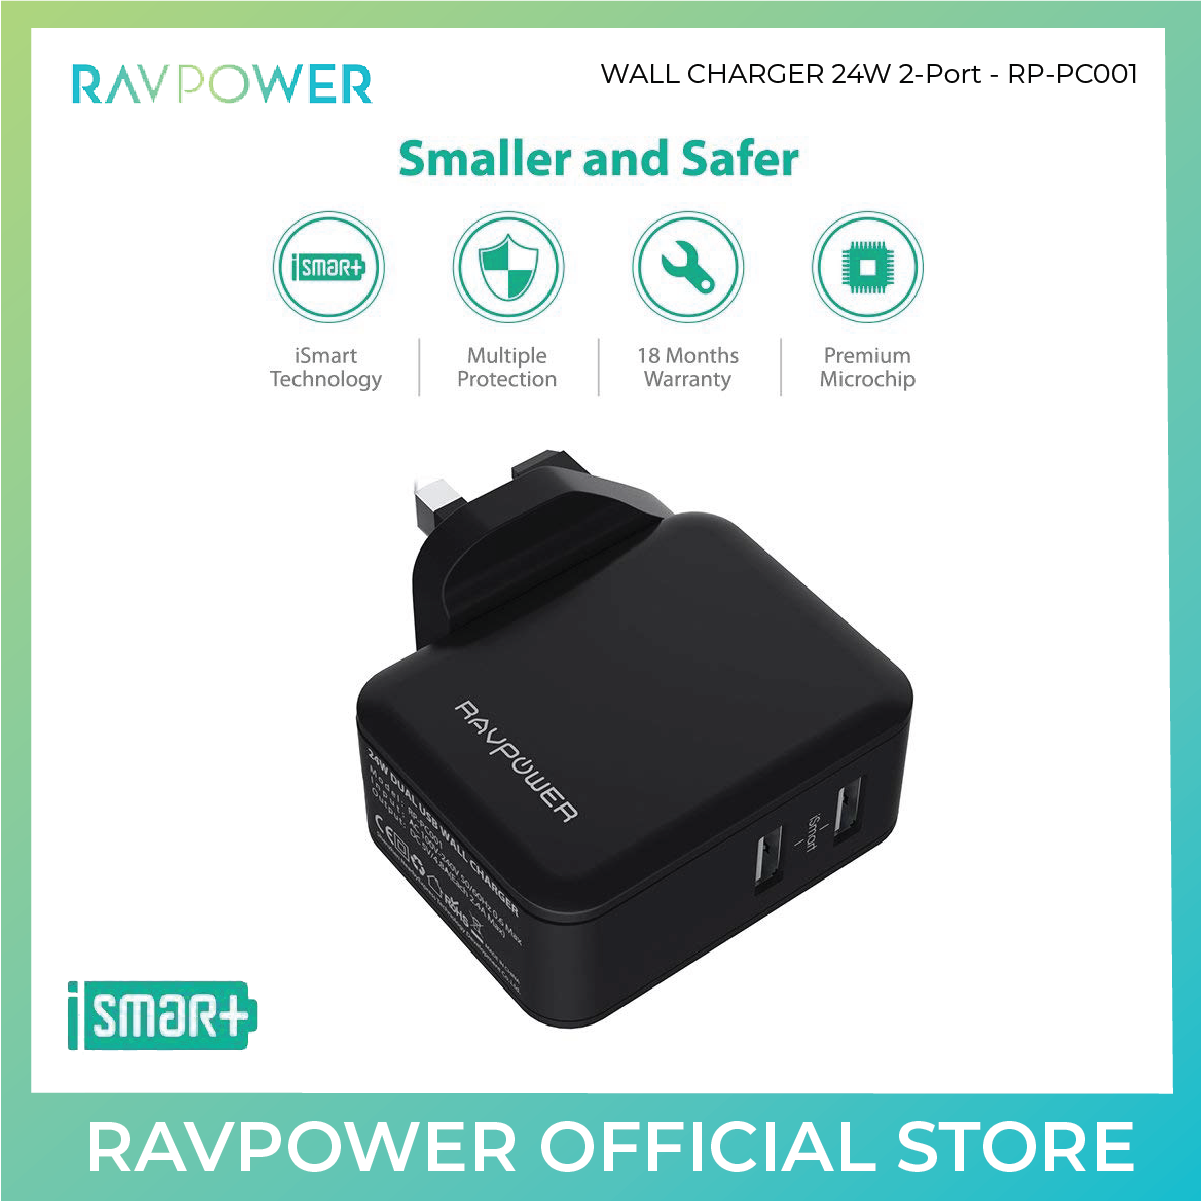 RAVPower 24W Dual USB Wall Charger Travel Adapter - RP-PC001